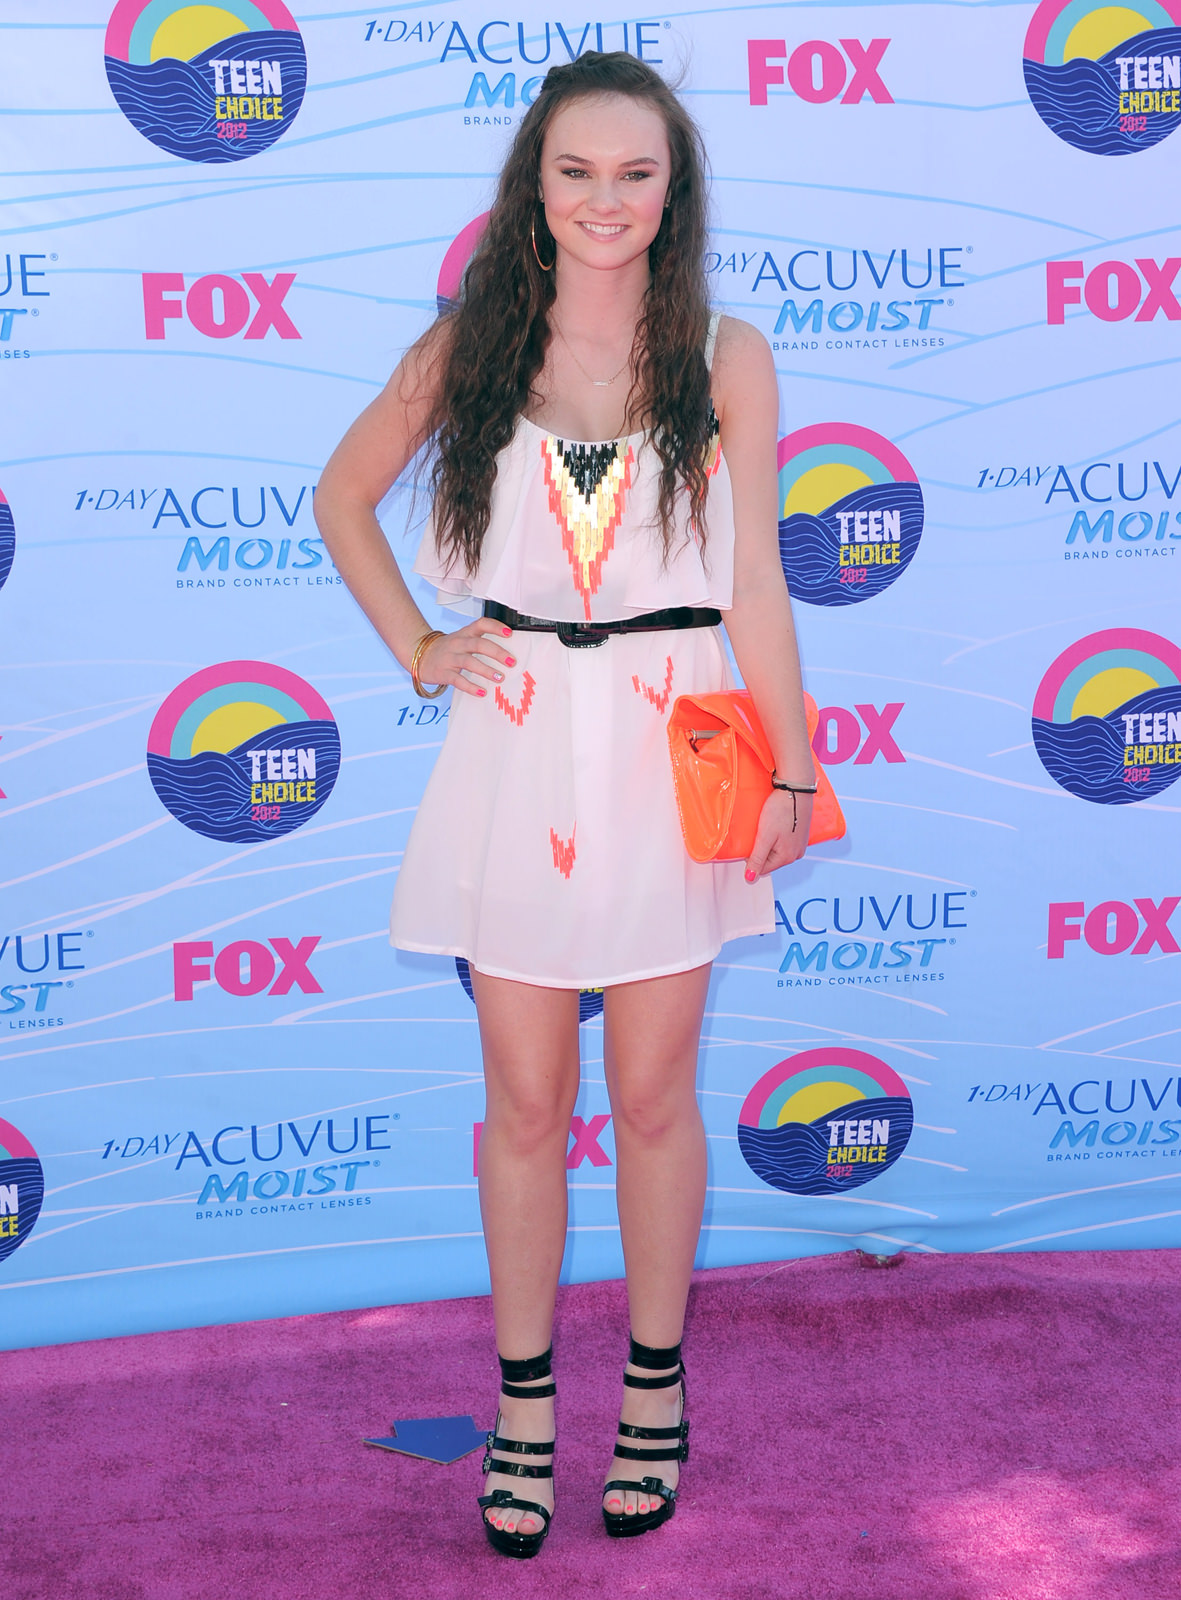 Madeline Carroll Photo Gallery